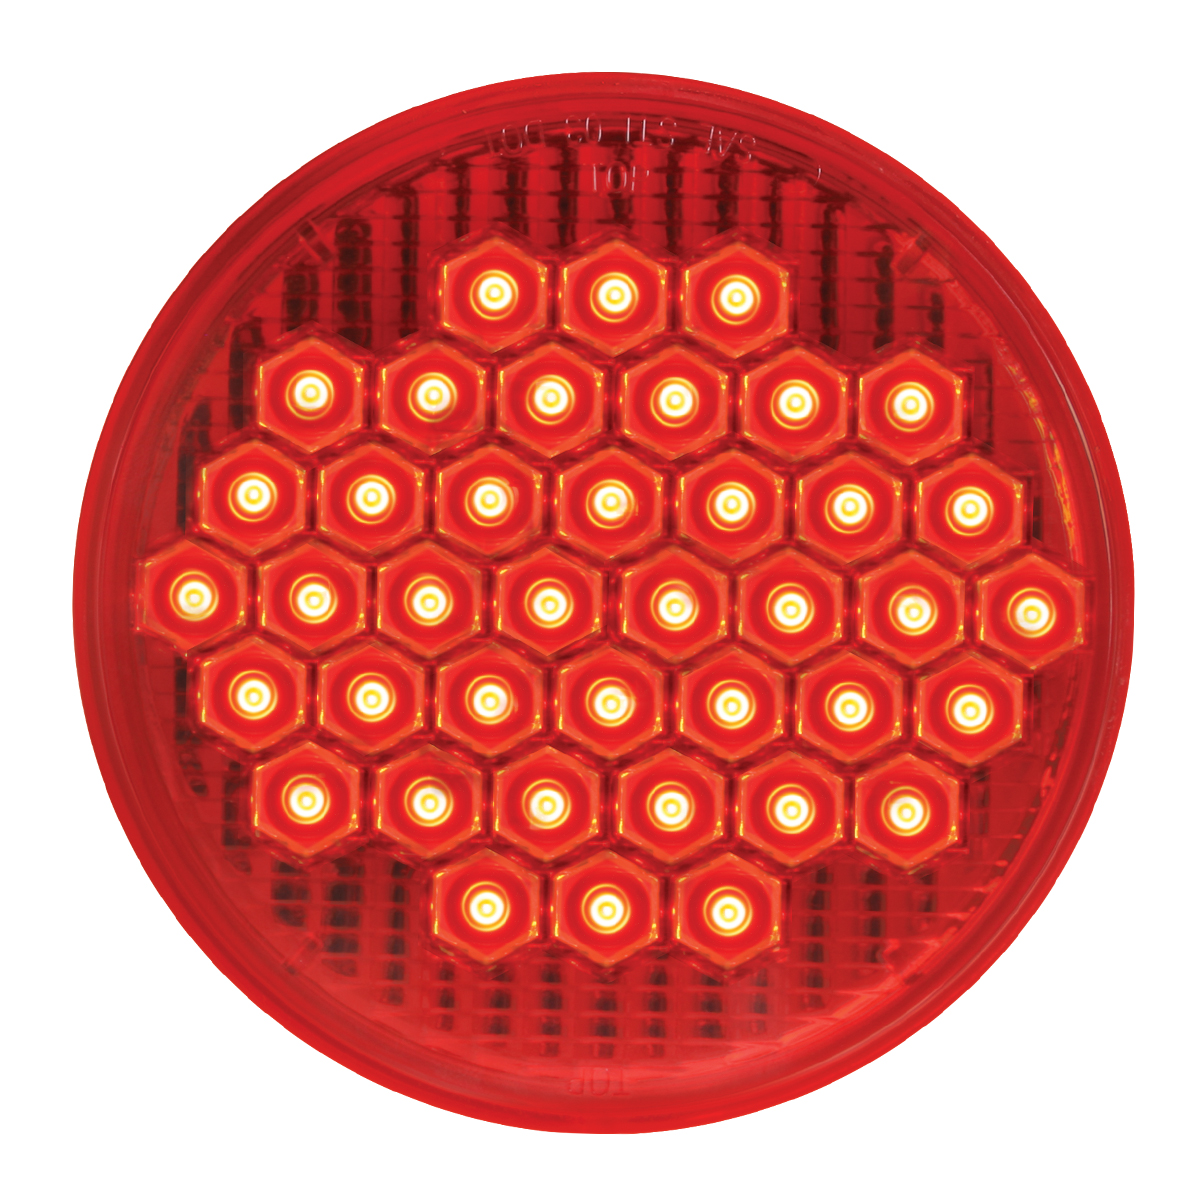 "#87700 - 4"" Round High Count LED Flat Red/Red Light"